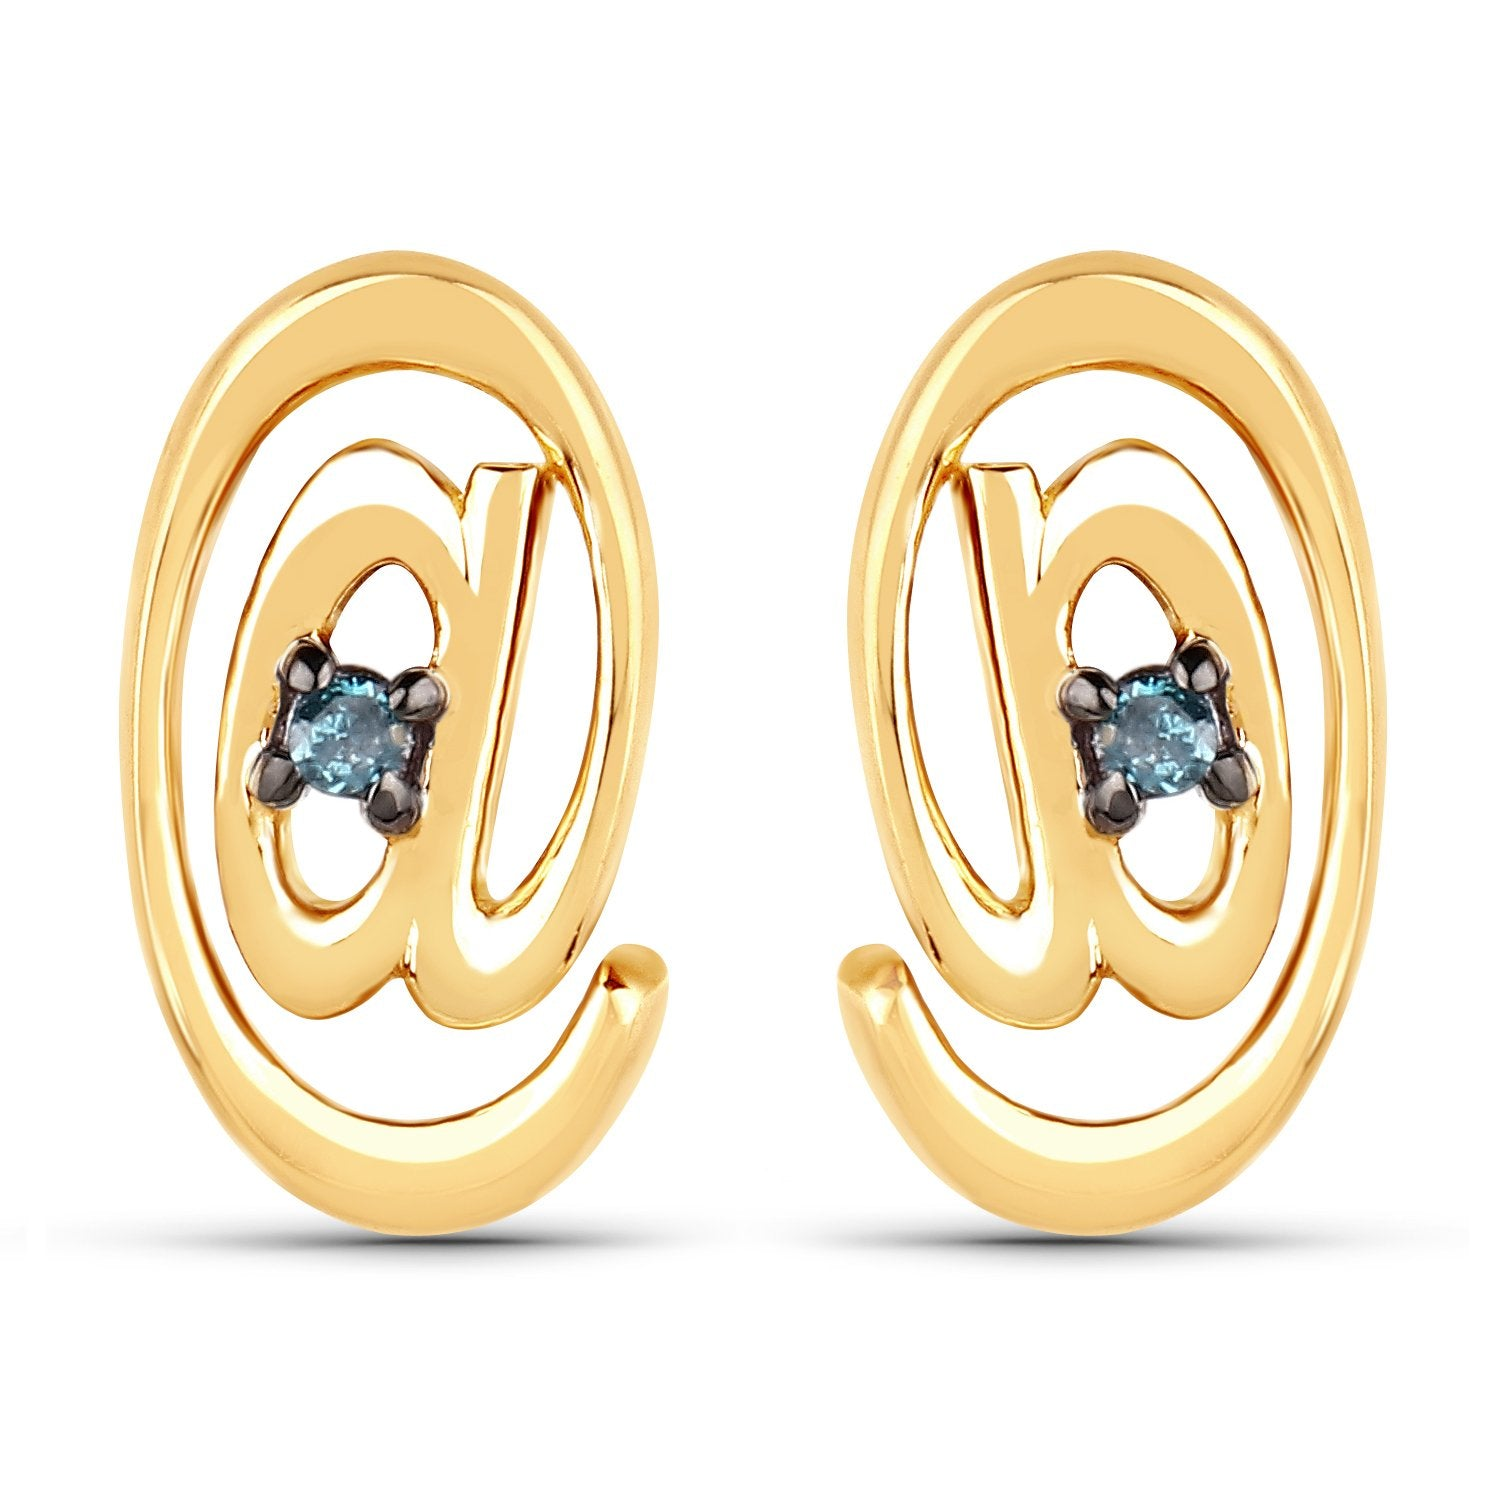 LoveHuang 0.01 Carats Genuine Blue Diamond (I-J, I2-I3) At Me Stud Earrings Solid .925 Sterling Silver With 18KT Yellow Gold Plating